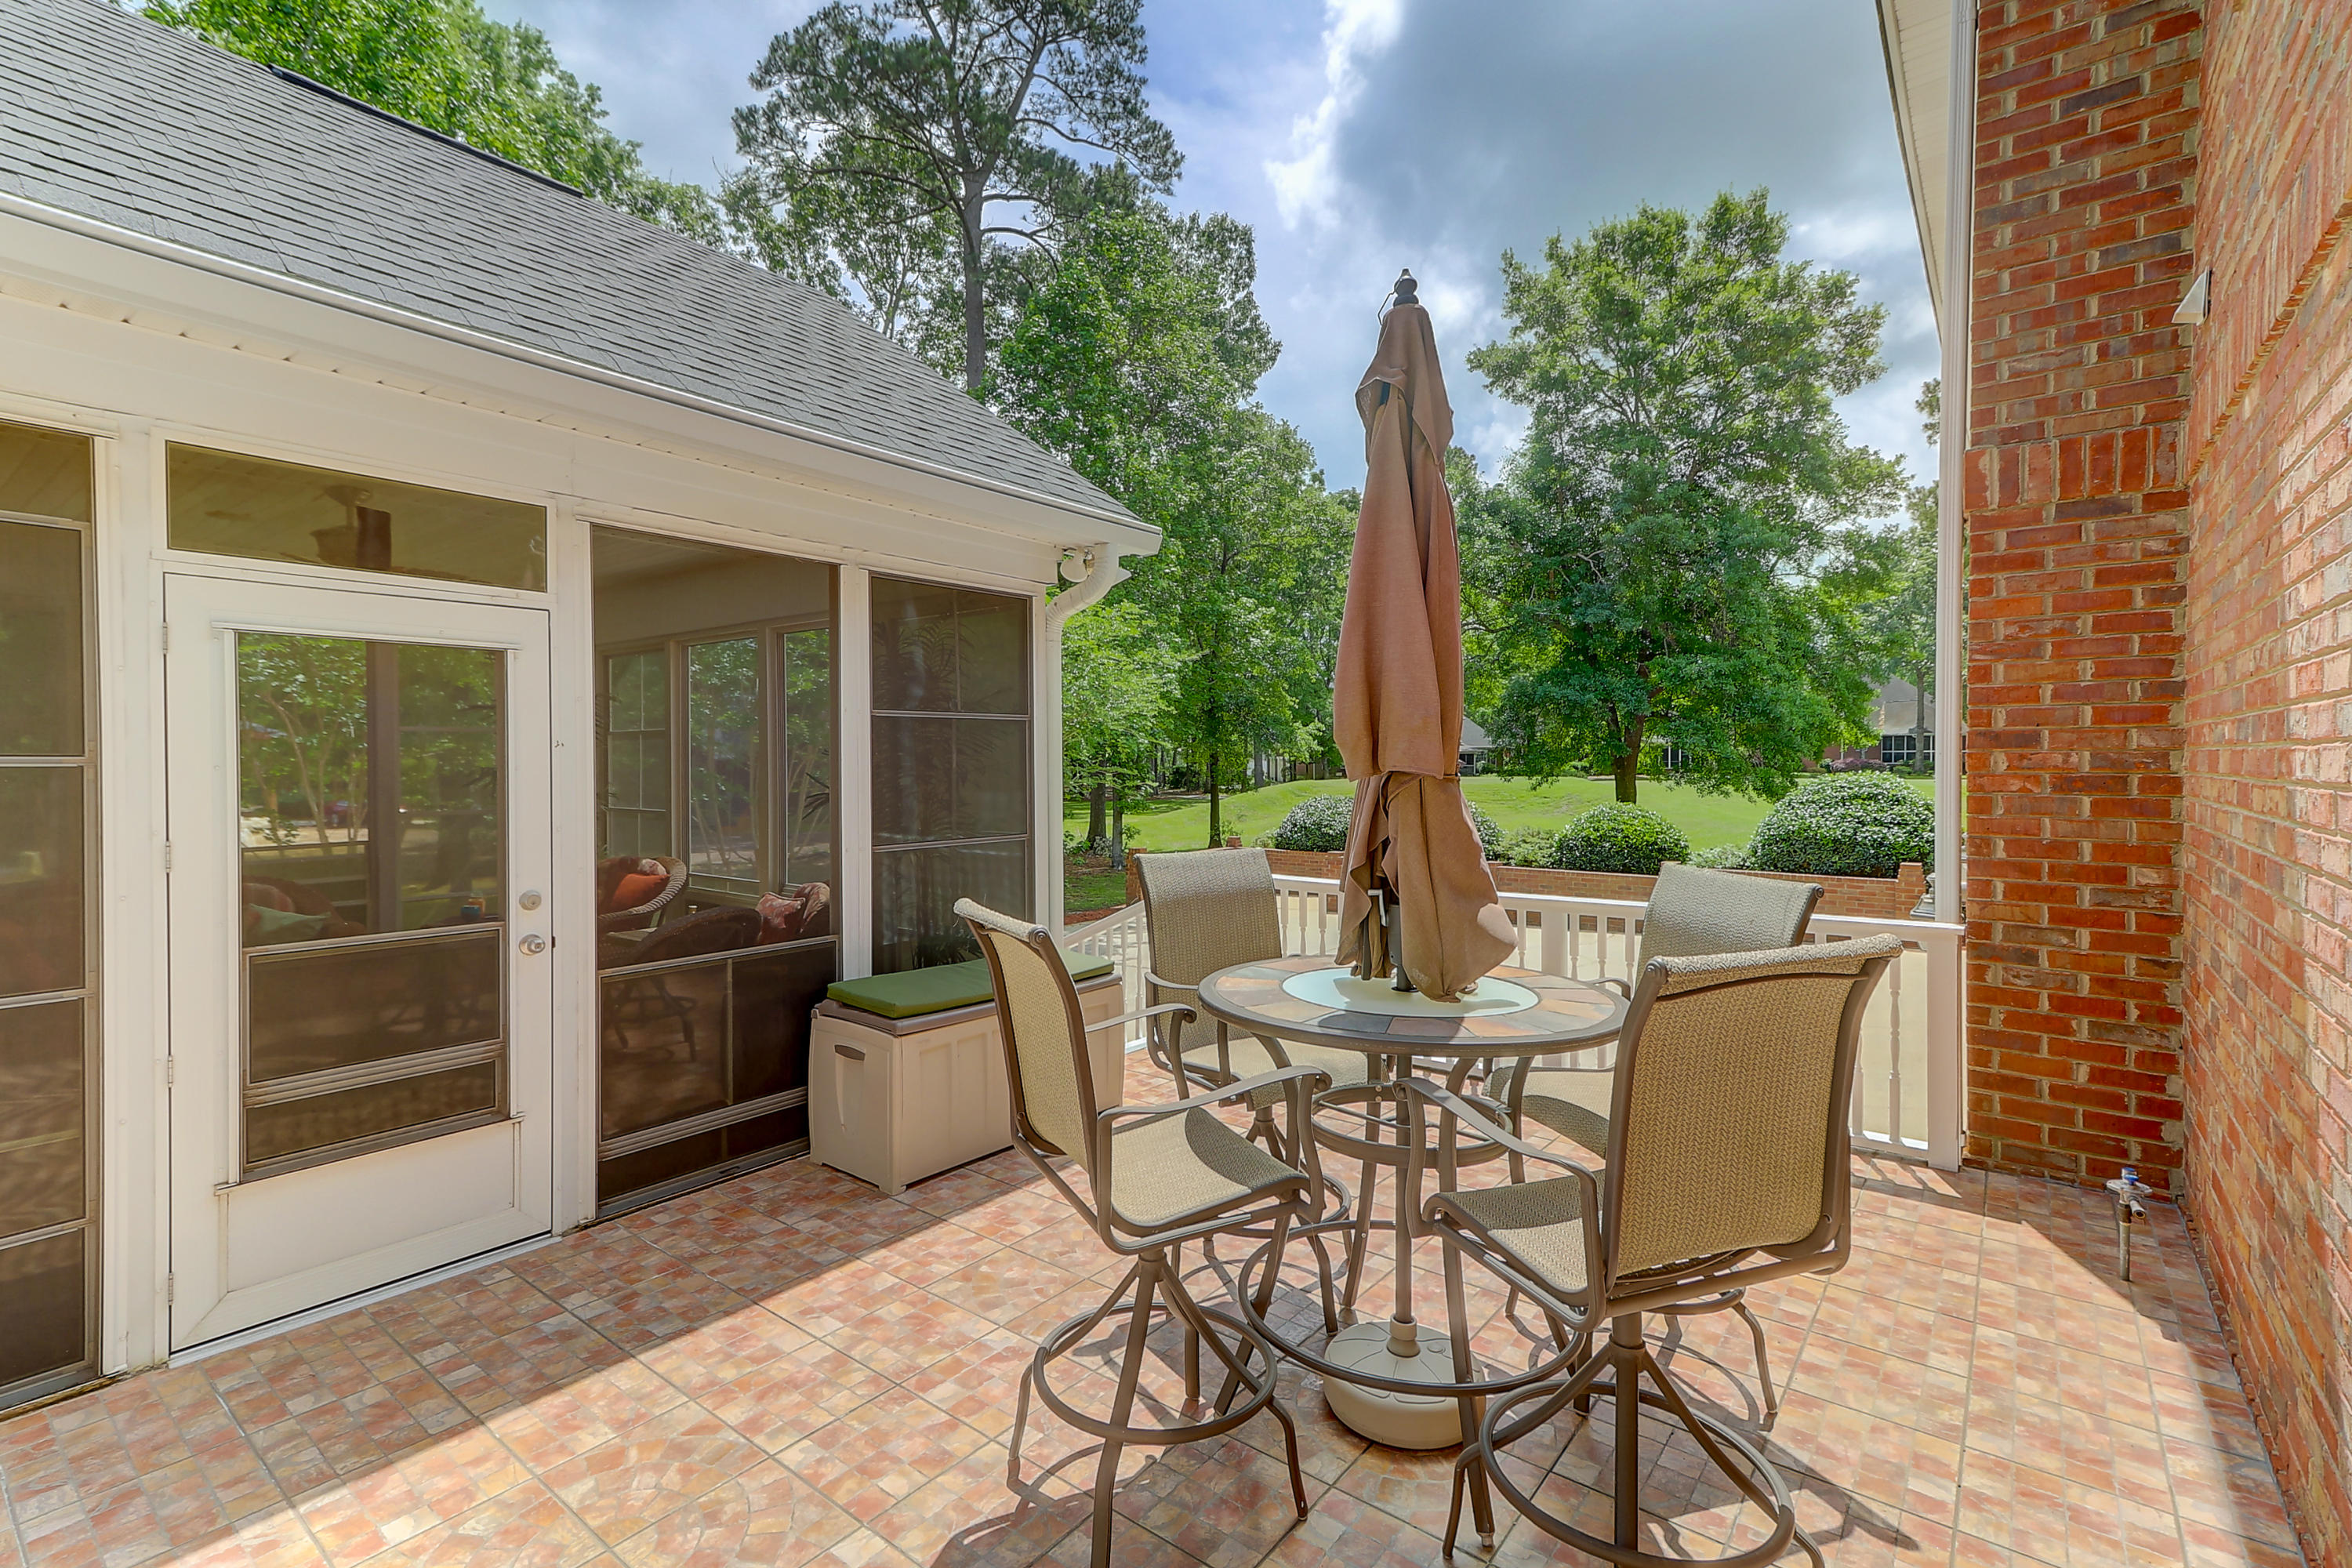 Coosaw Creek Country Club Homes For Sale - 8700 Fairway Woods, North Charleston, SC - 26